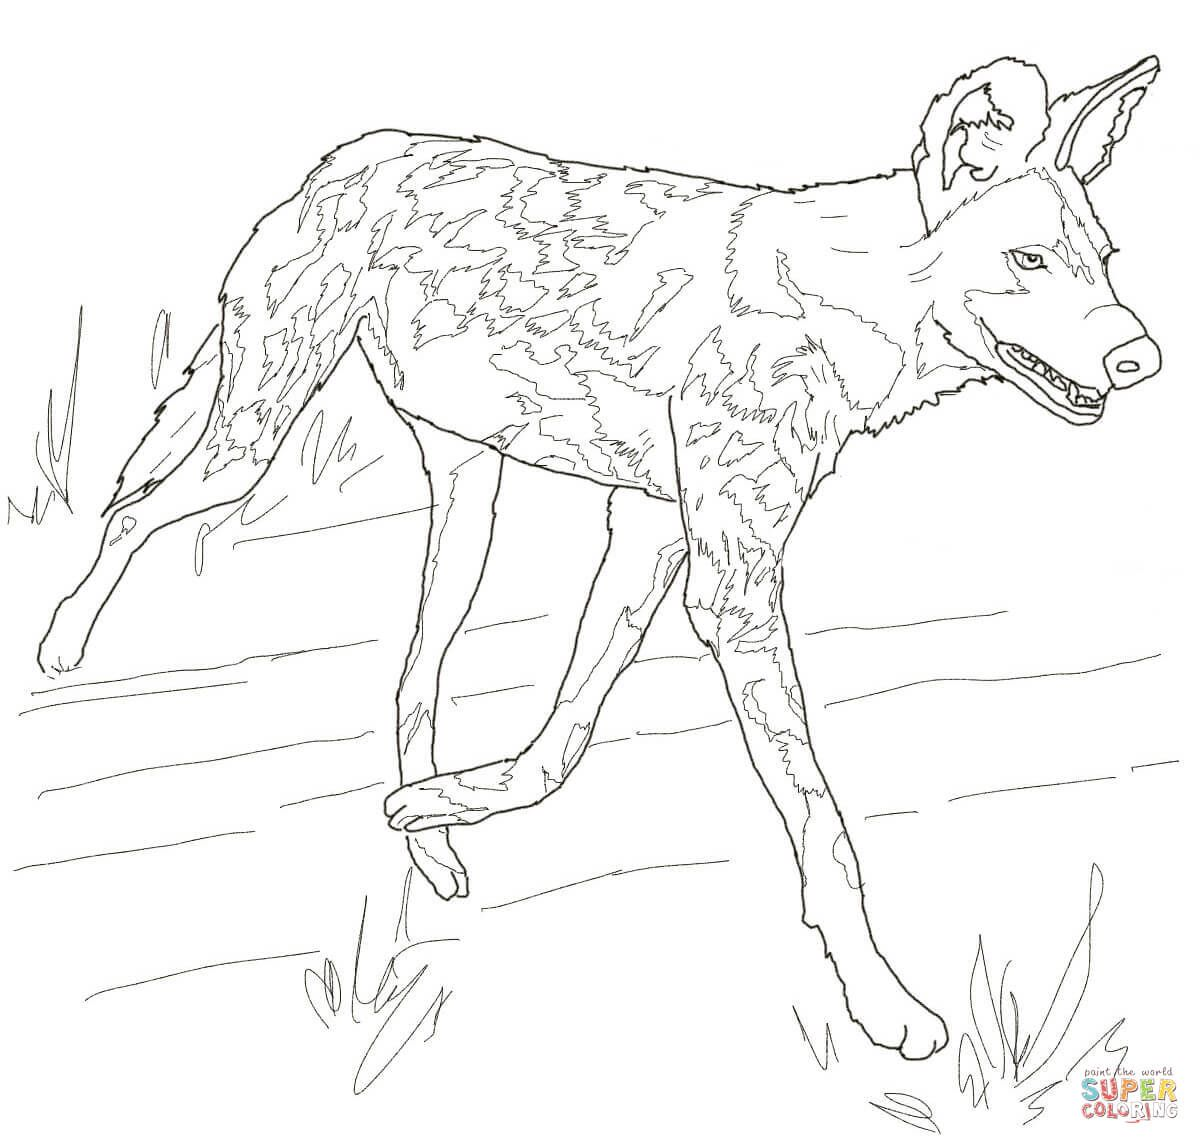 The African Painted Dog, typically roams the open plains